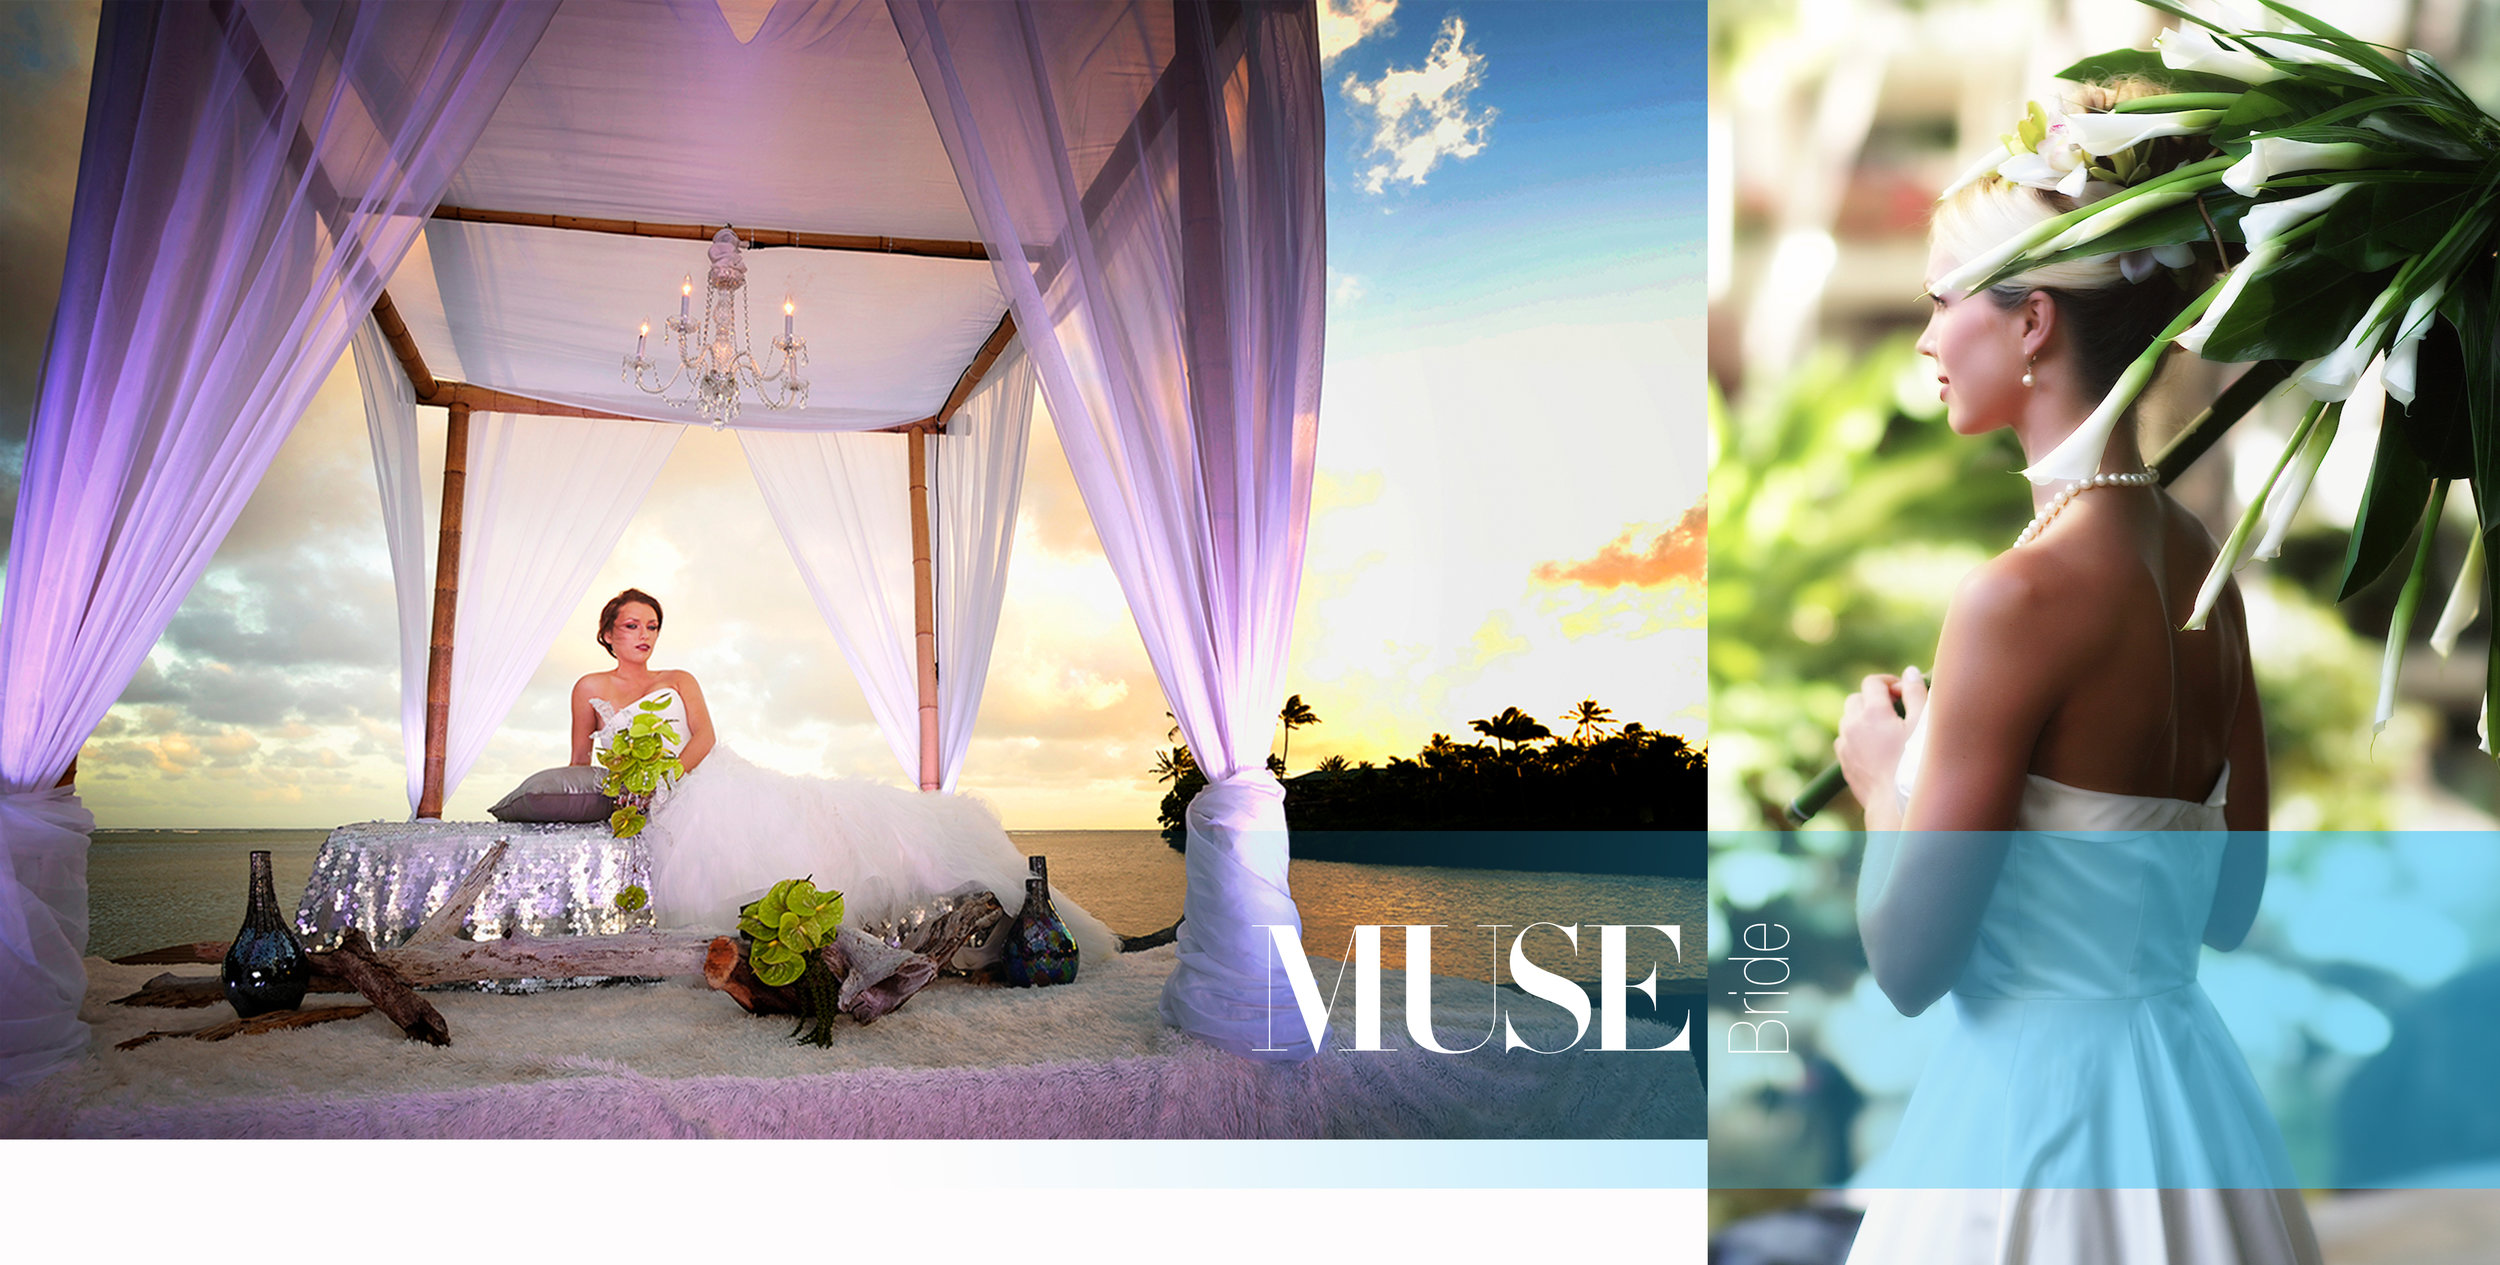 About MUSE Bride - At MUSE Bride I approach each Client event with a tremendous amount of care and consideration. My emphasis is on creating beautiful bridal images by utilizing the collective insights of my Clients and a deep understanding of cross-cultural forms and communication.